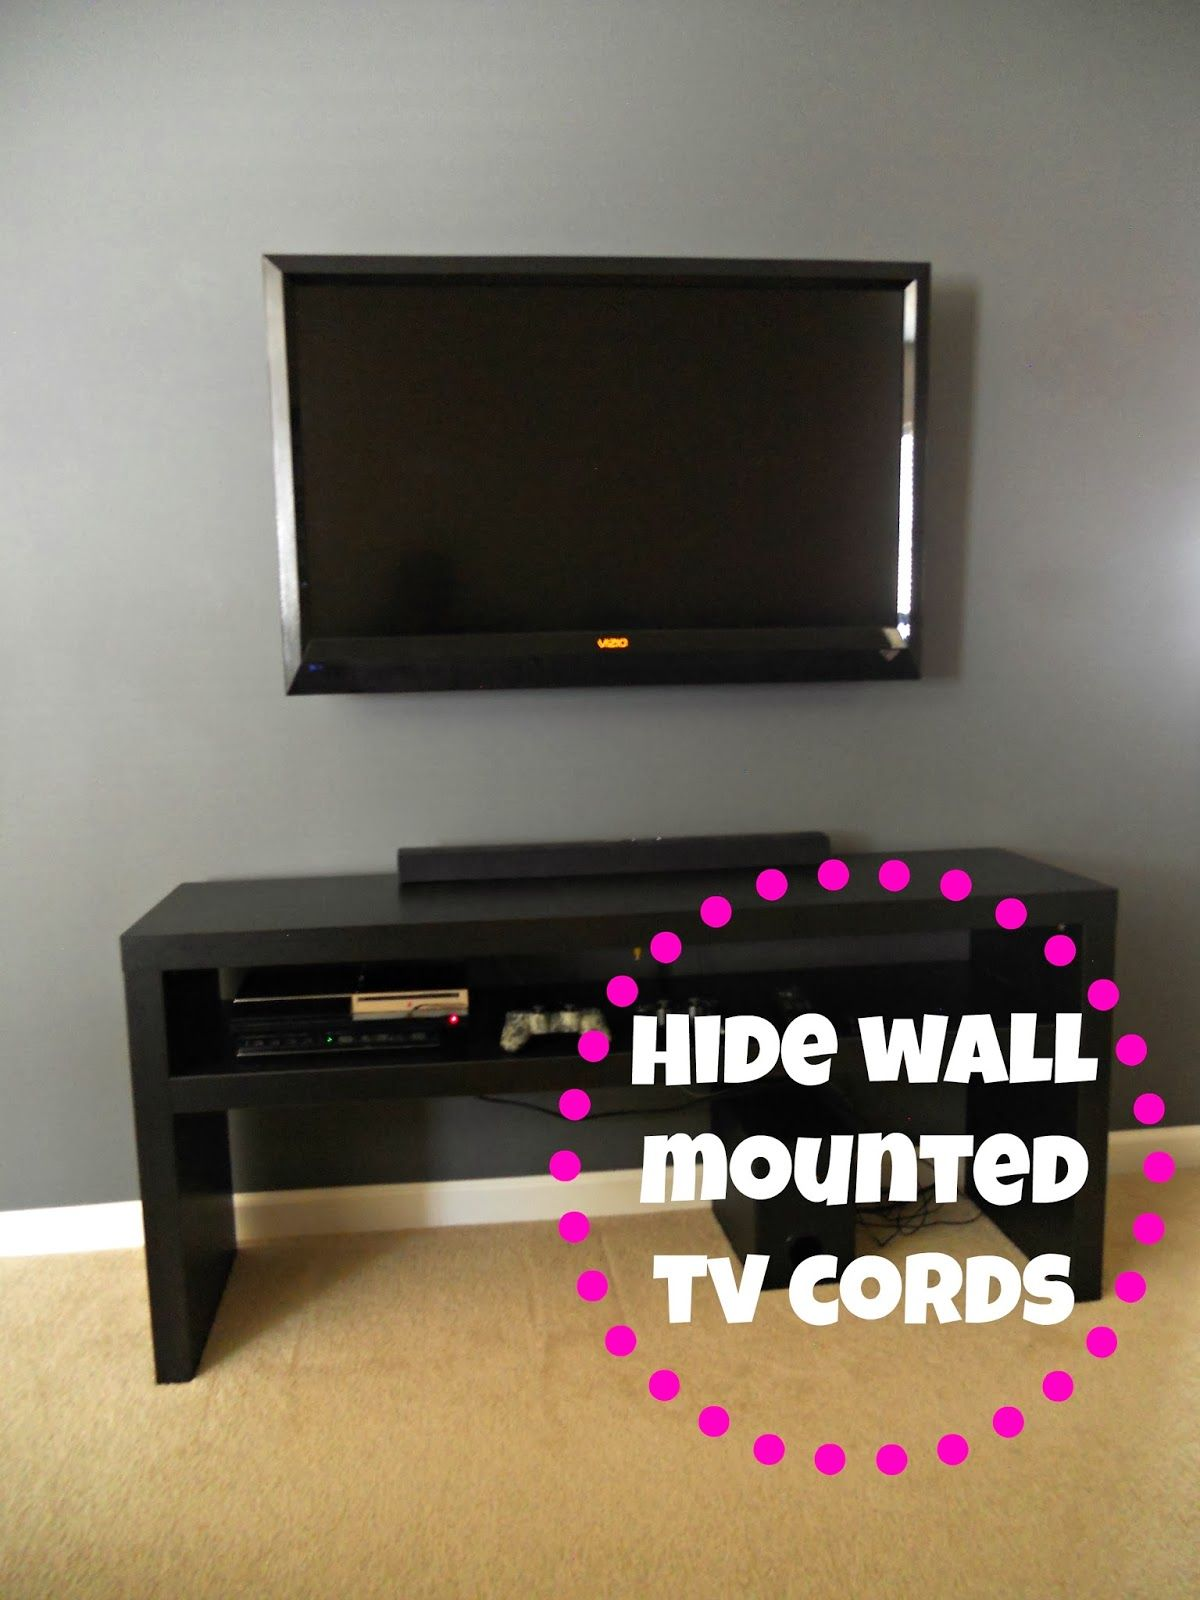 Decorating Cents Wall Mounted Tv And Hiding The Cords Wall Mounted Tv Tv Wall Tv Cords